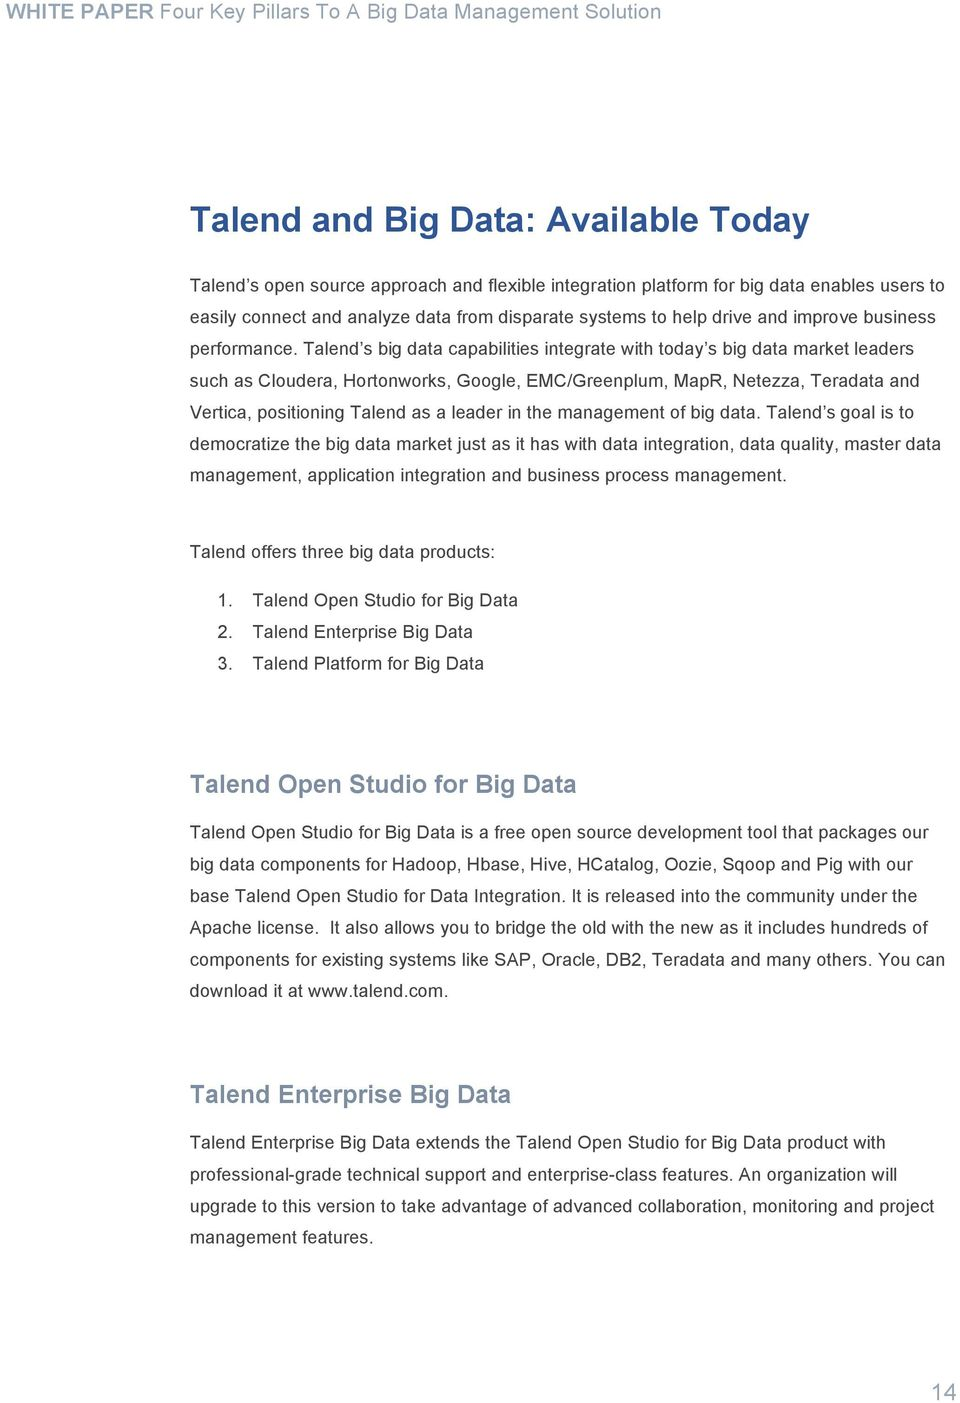 Talend s big data capabilities integrate with today s big data market leaders such as Cloudera, Hortonworks, Google, EMC/Greenplum, MapR, Netezza, Teradata and Vertica, positioning Talend as a leader